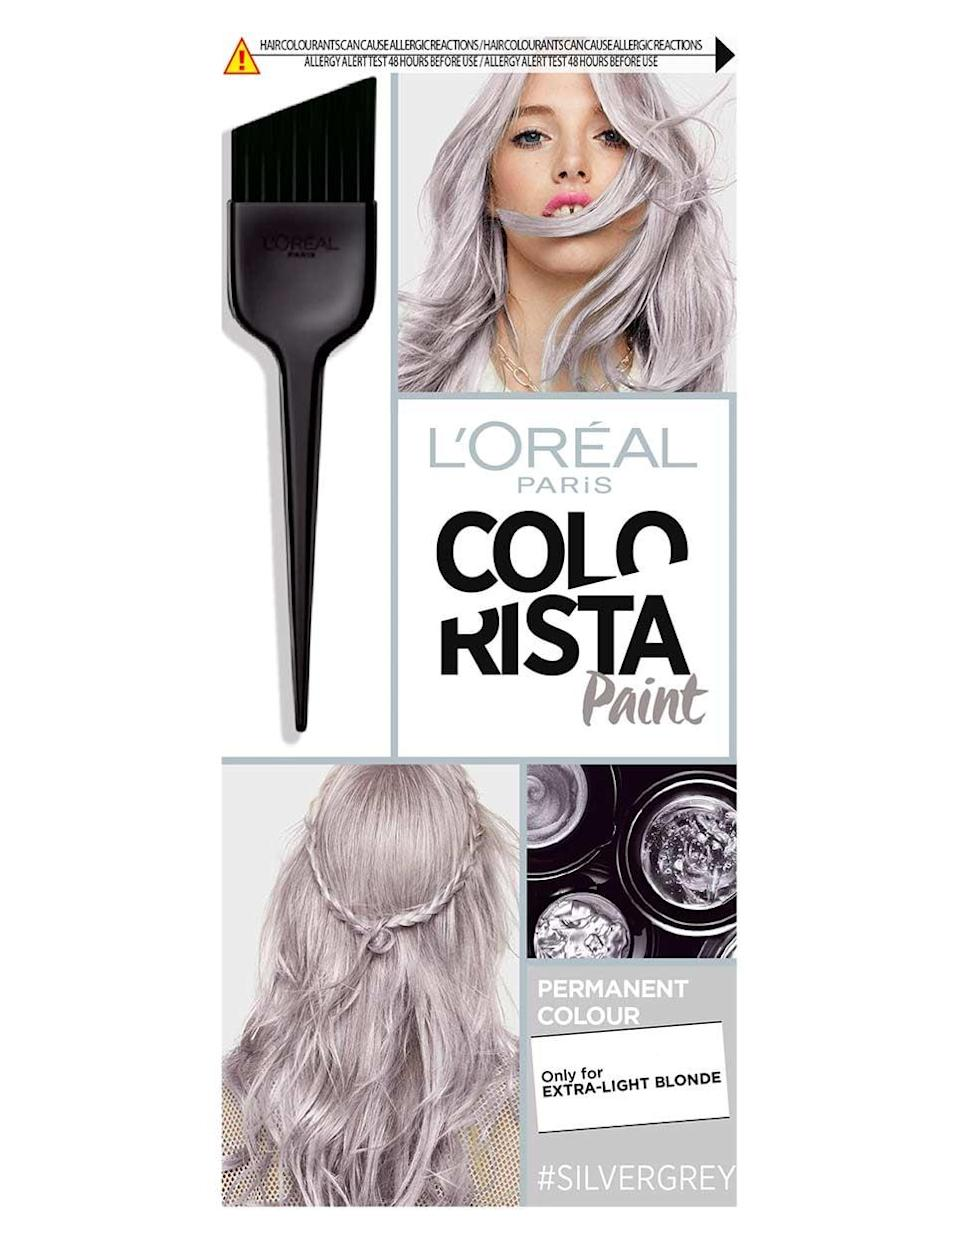 """<p>The <a rel=""""nofollow noopener"""" href=""""https://www.popsugar.com/buy/L%27Or%C3%A9al%20Colorista%20Paint%20Silver%20Grey%20Permanent%20Hair%20Dye-407298?p_name=L%27Or%C3%A9al%20Colorista%20Paint%20Silver%20Grey%20Permanent%20Hair%20Dye&retailer=boots.com&price=9&evar1=bella%3Aus&evar9=45703030&evar98=https%3A%2F%2Fwww.popsugar.com%2Fbeauty%2Fphoto-gallery%2F45703030%2Fimage%2F45703092%2FExact-L%C3%A9al-Product-She-Used-Dye-Her-Hair&prop13=api&pdata=1"""" target=""""_blank"""" data-ylk=""""slk:L'Oréal Colorista Paint Silver Grey Permanent Hair Dye"""" class=""""link rapid-noclick-resp"""">L'Oréal Colorista Paint Silver Grey Permanent Hair Dye</a> ($9) appears to only be available online in the UK - time to hit up those relatives across the pond!</p>"""